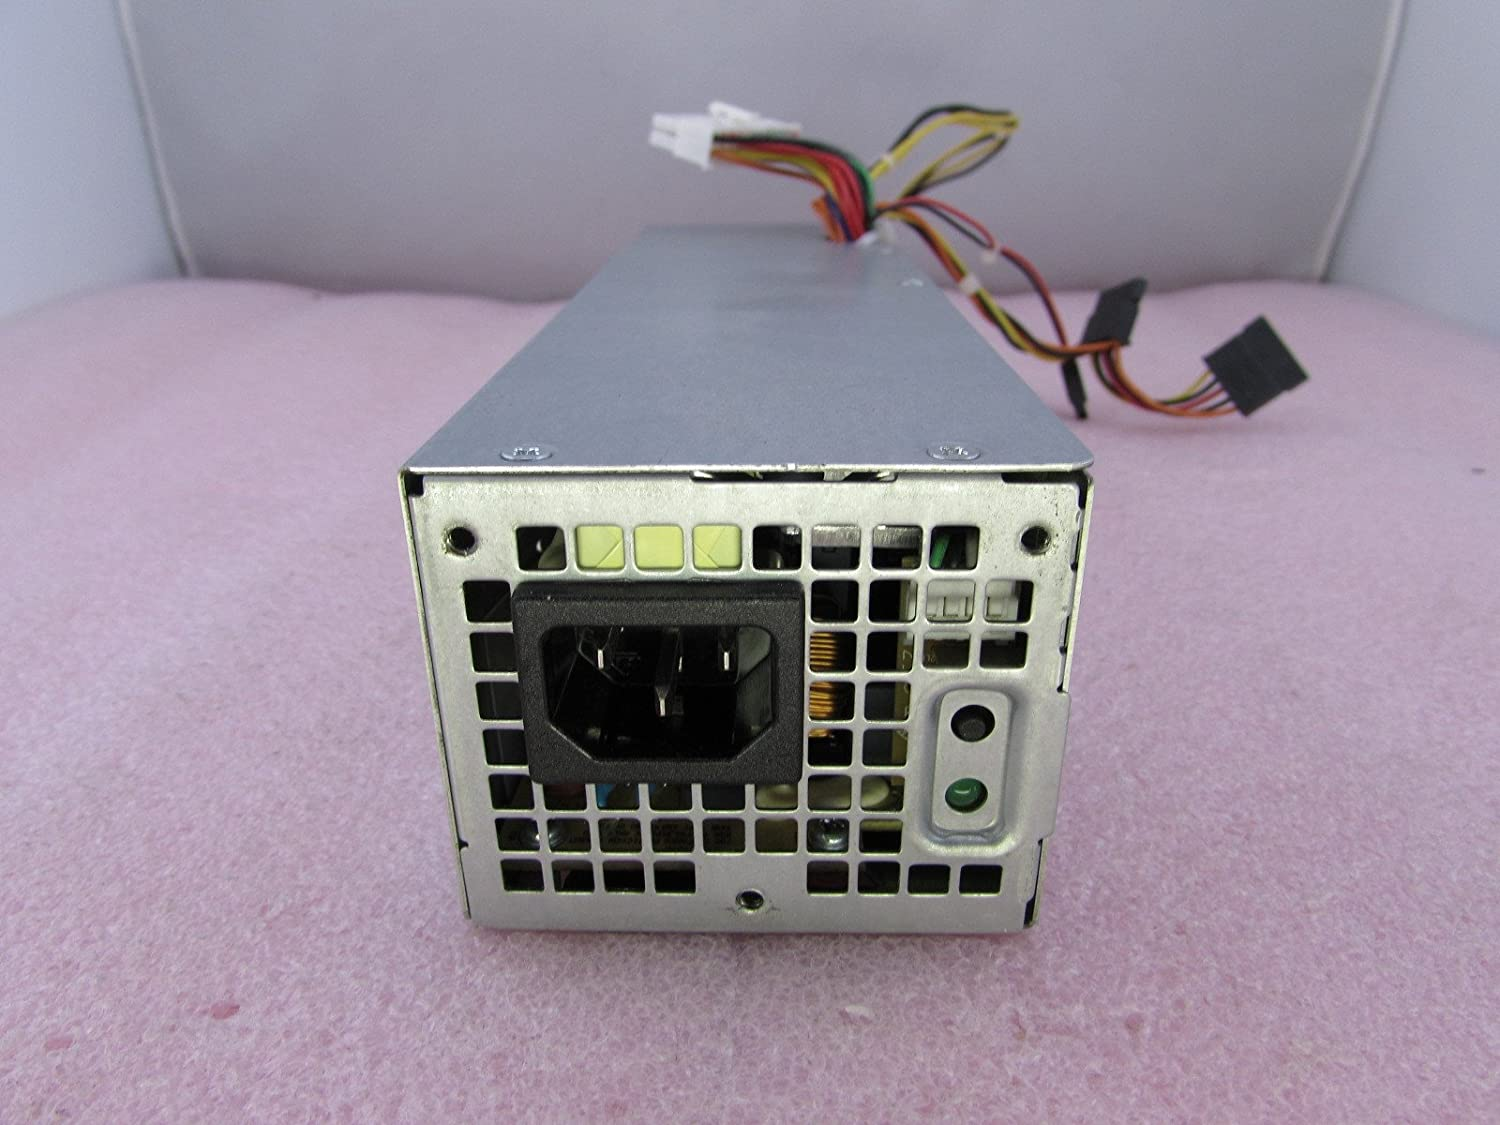 Dell 3WN11 H240AS-00 240W ATX SFF M-ITX Power Supply D240A002L RV1C4 J50TW 2TXYM